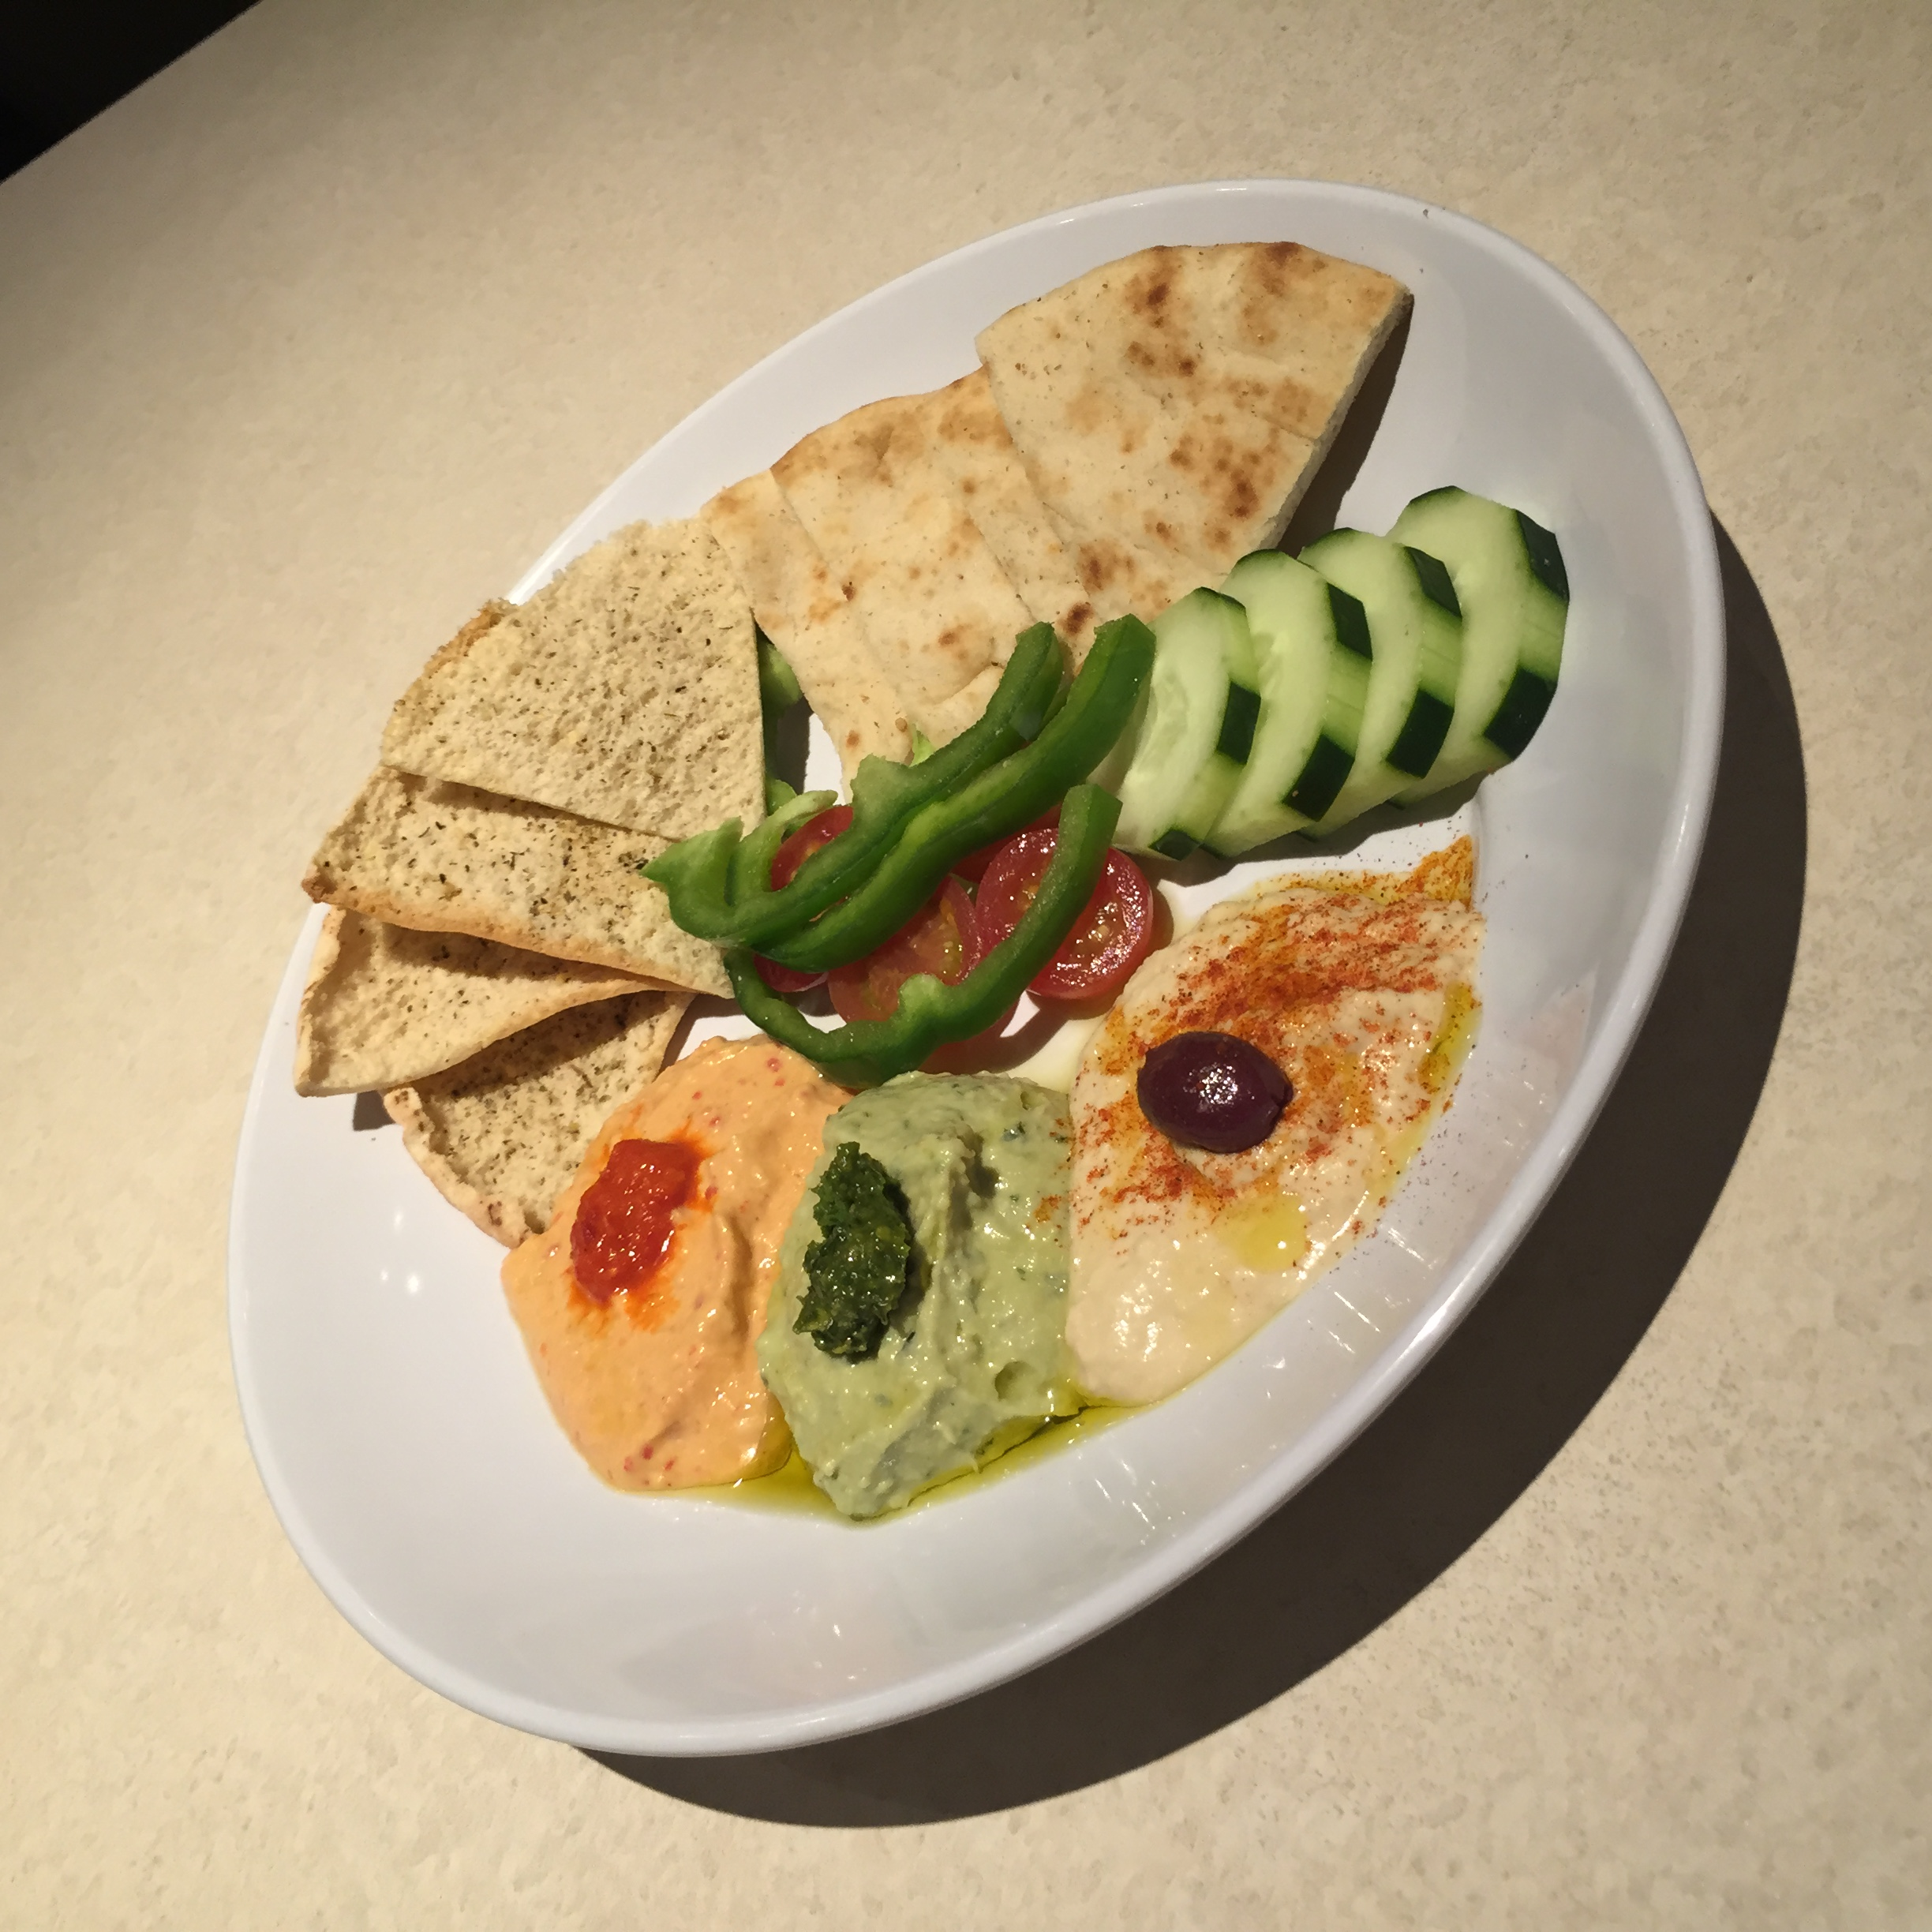 Zoes Kitchen Adds New Entree And More Hummus Options To